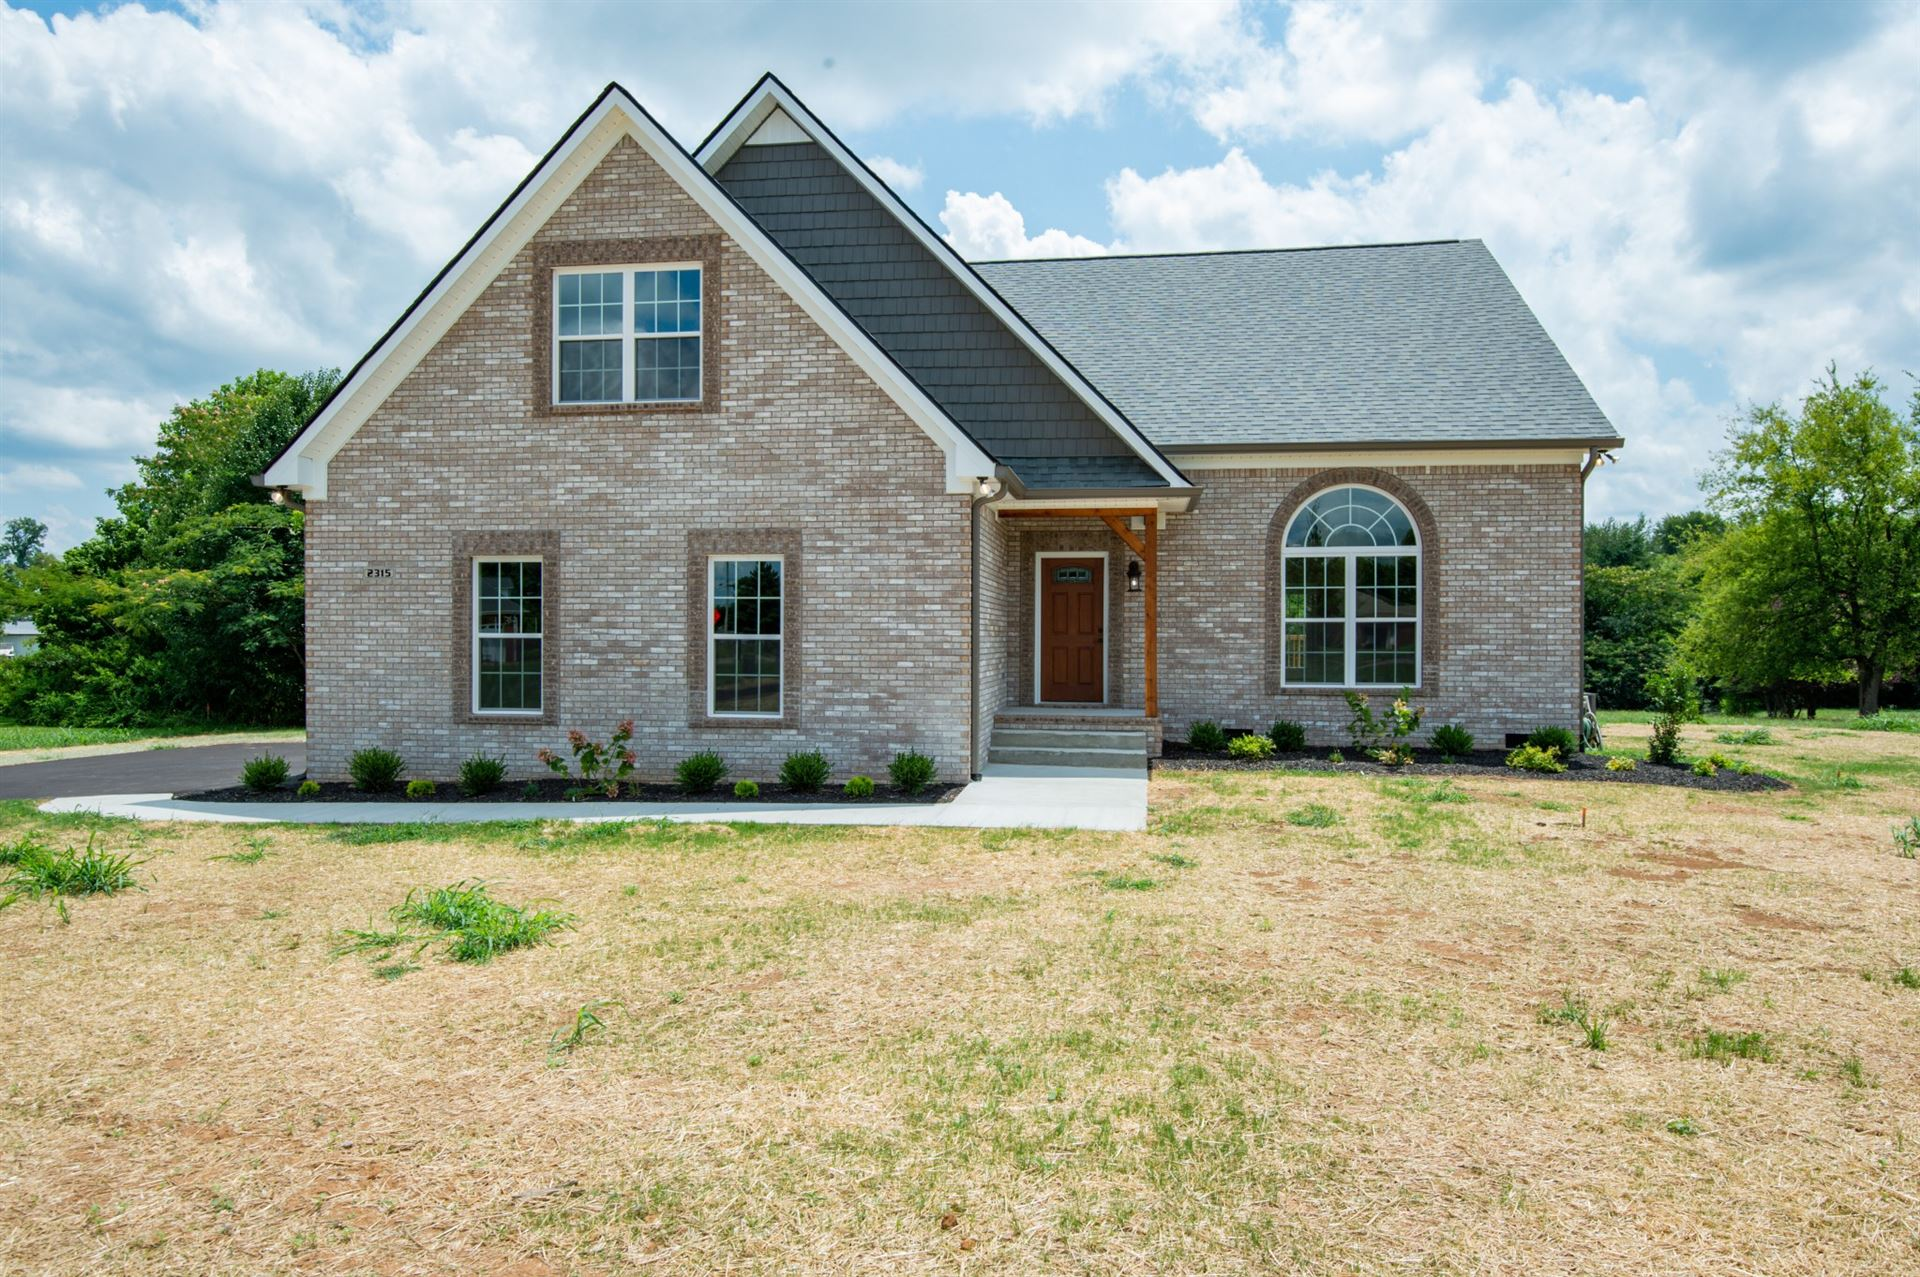 2315 Westgate Ct, Columbia, TN 38401 - MLS#: 2178376